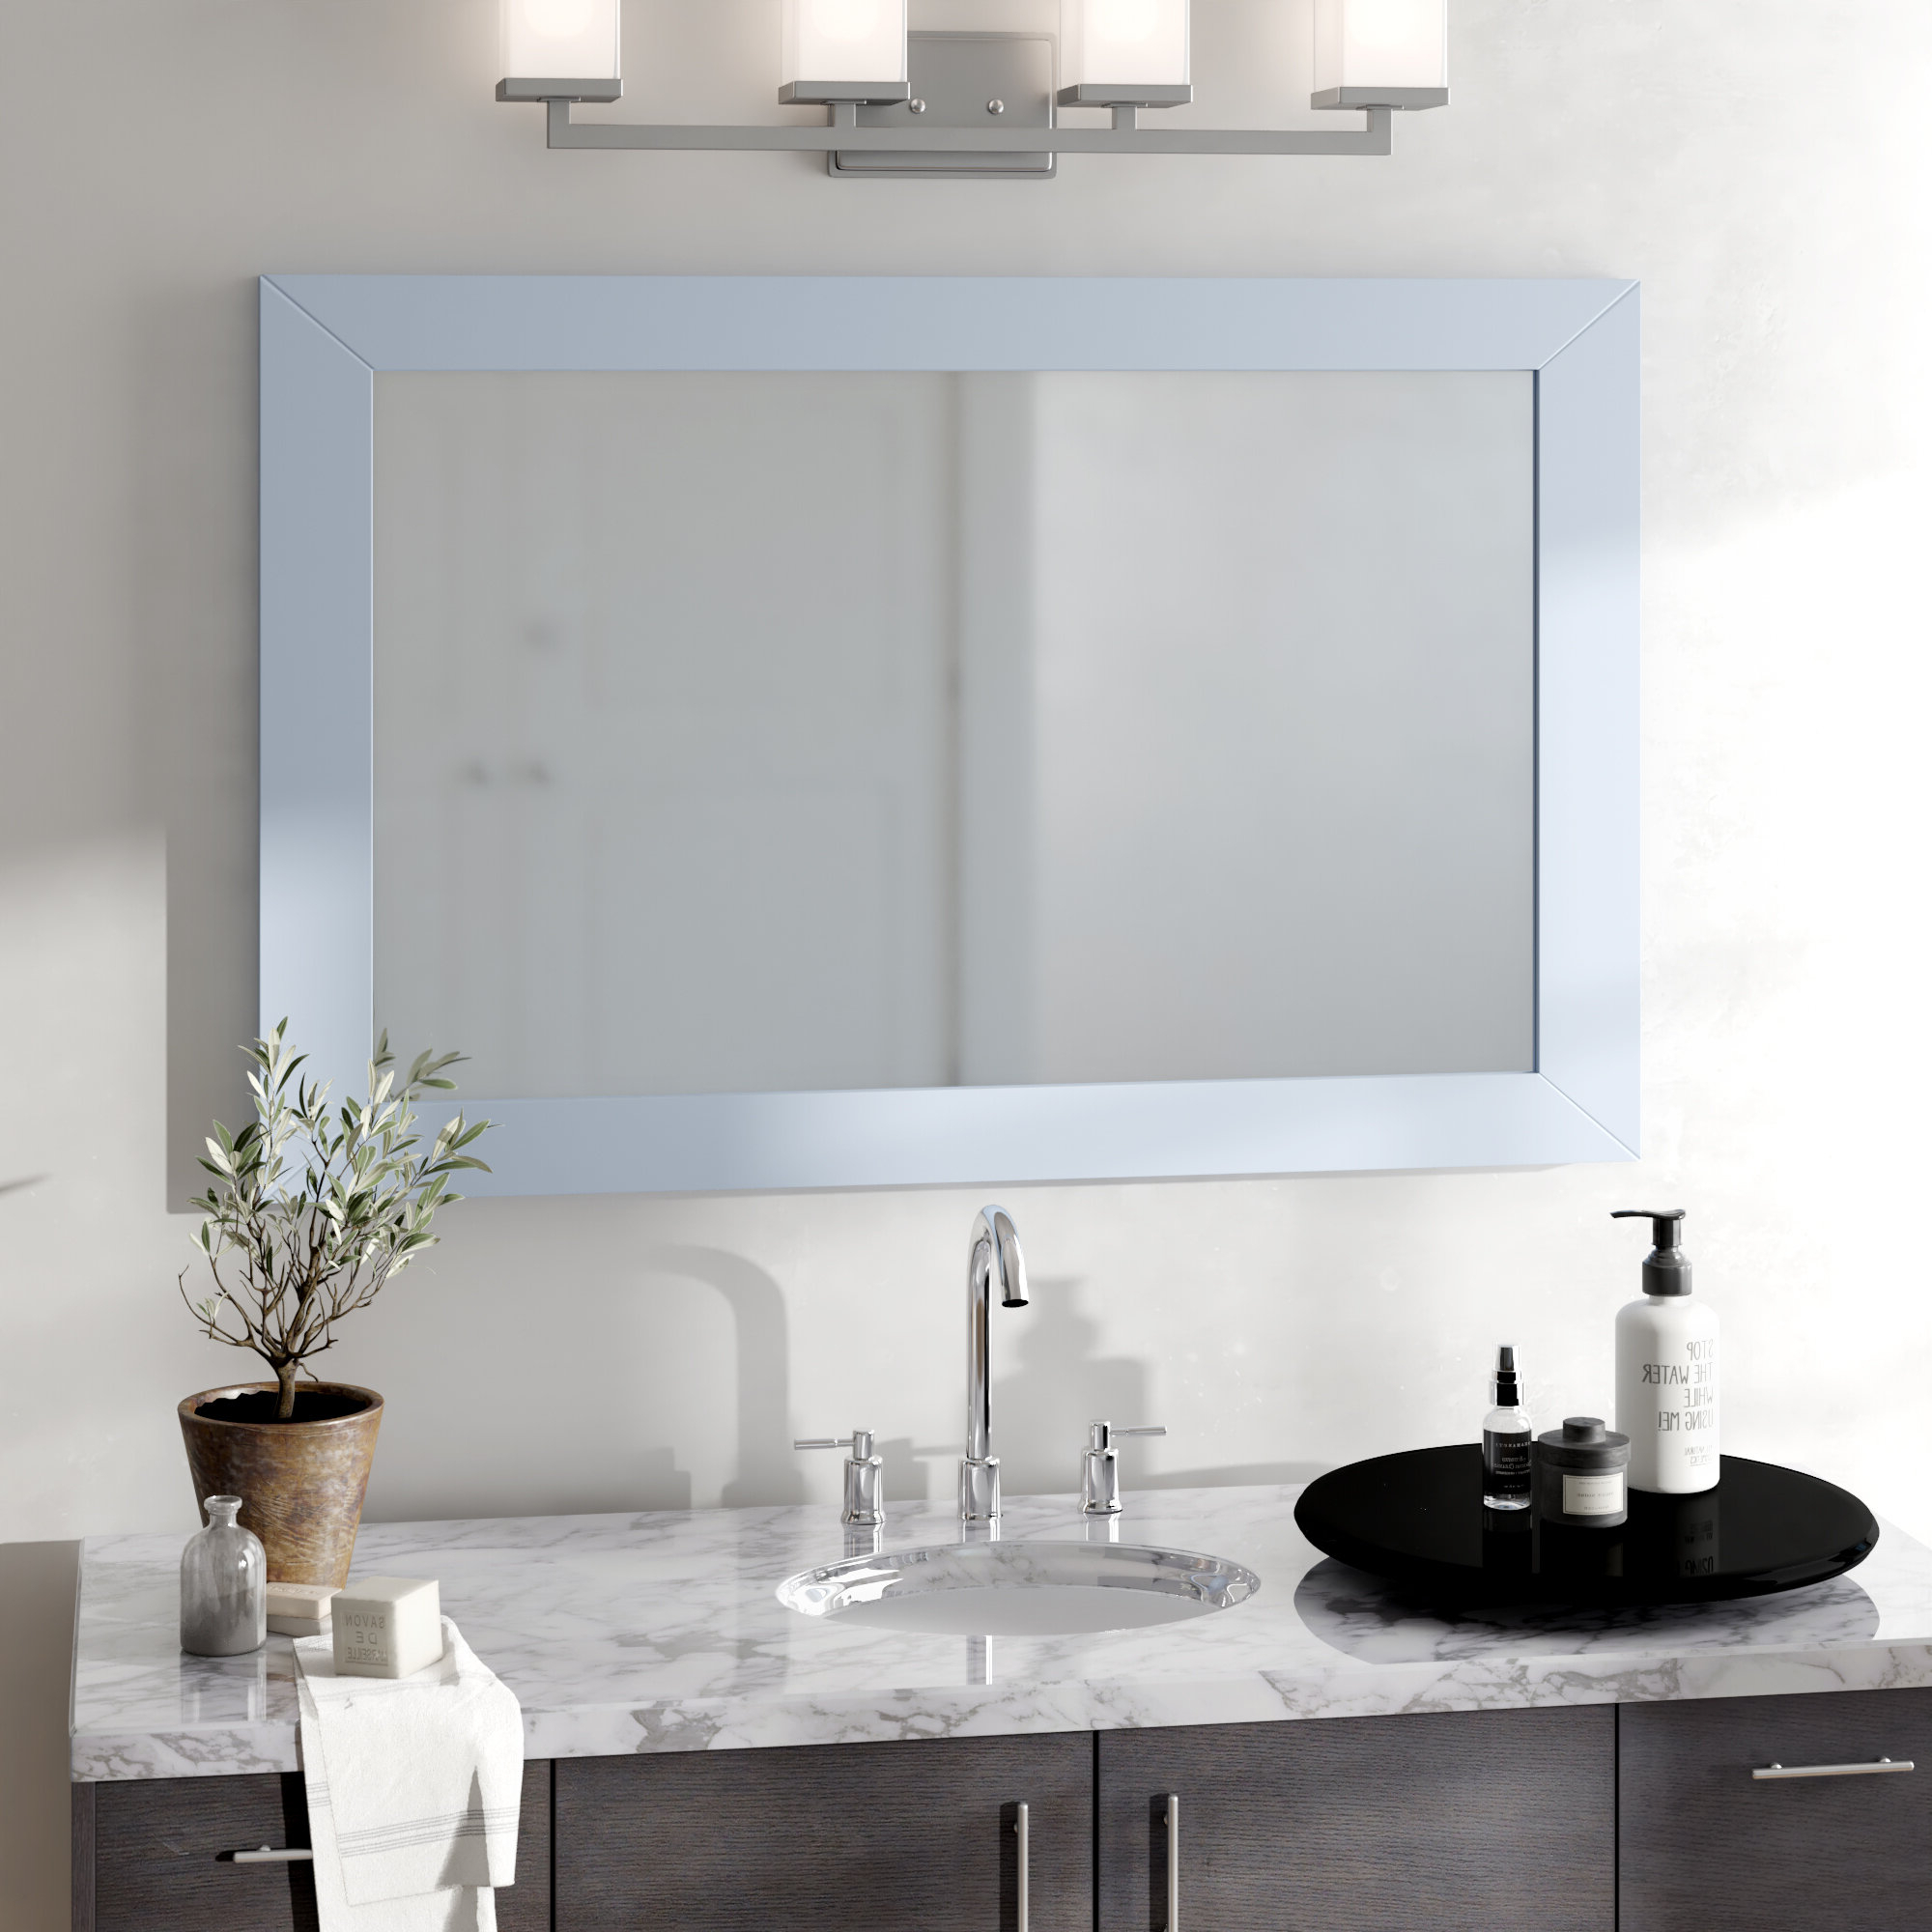 Frames For Bathroom Wall Mirrors Intended For Current Piccirillo Rectangle Framed Bathroom Wall Mirror (View 15 of 20)